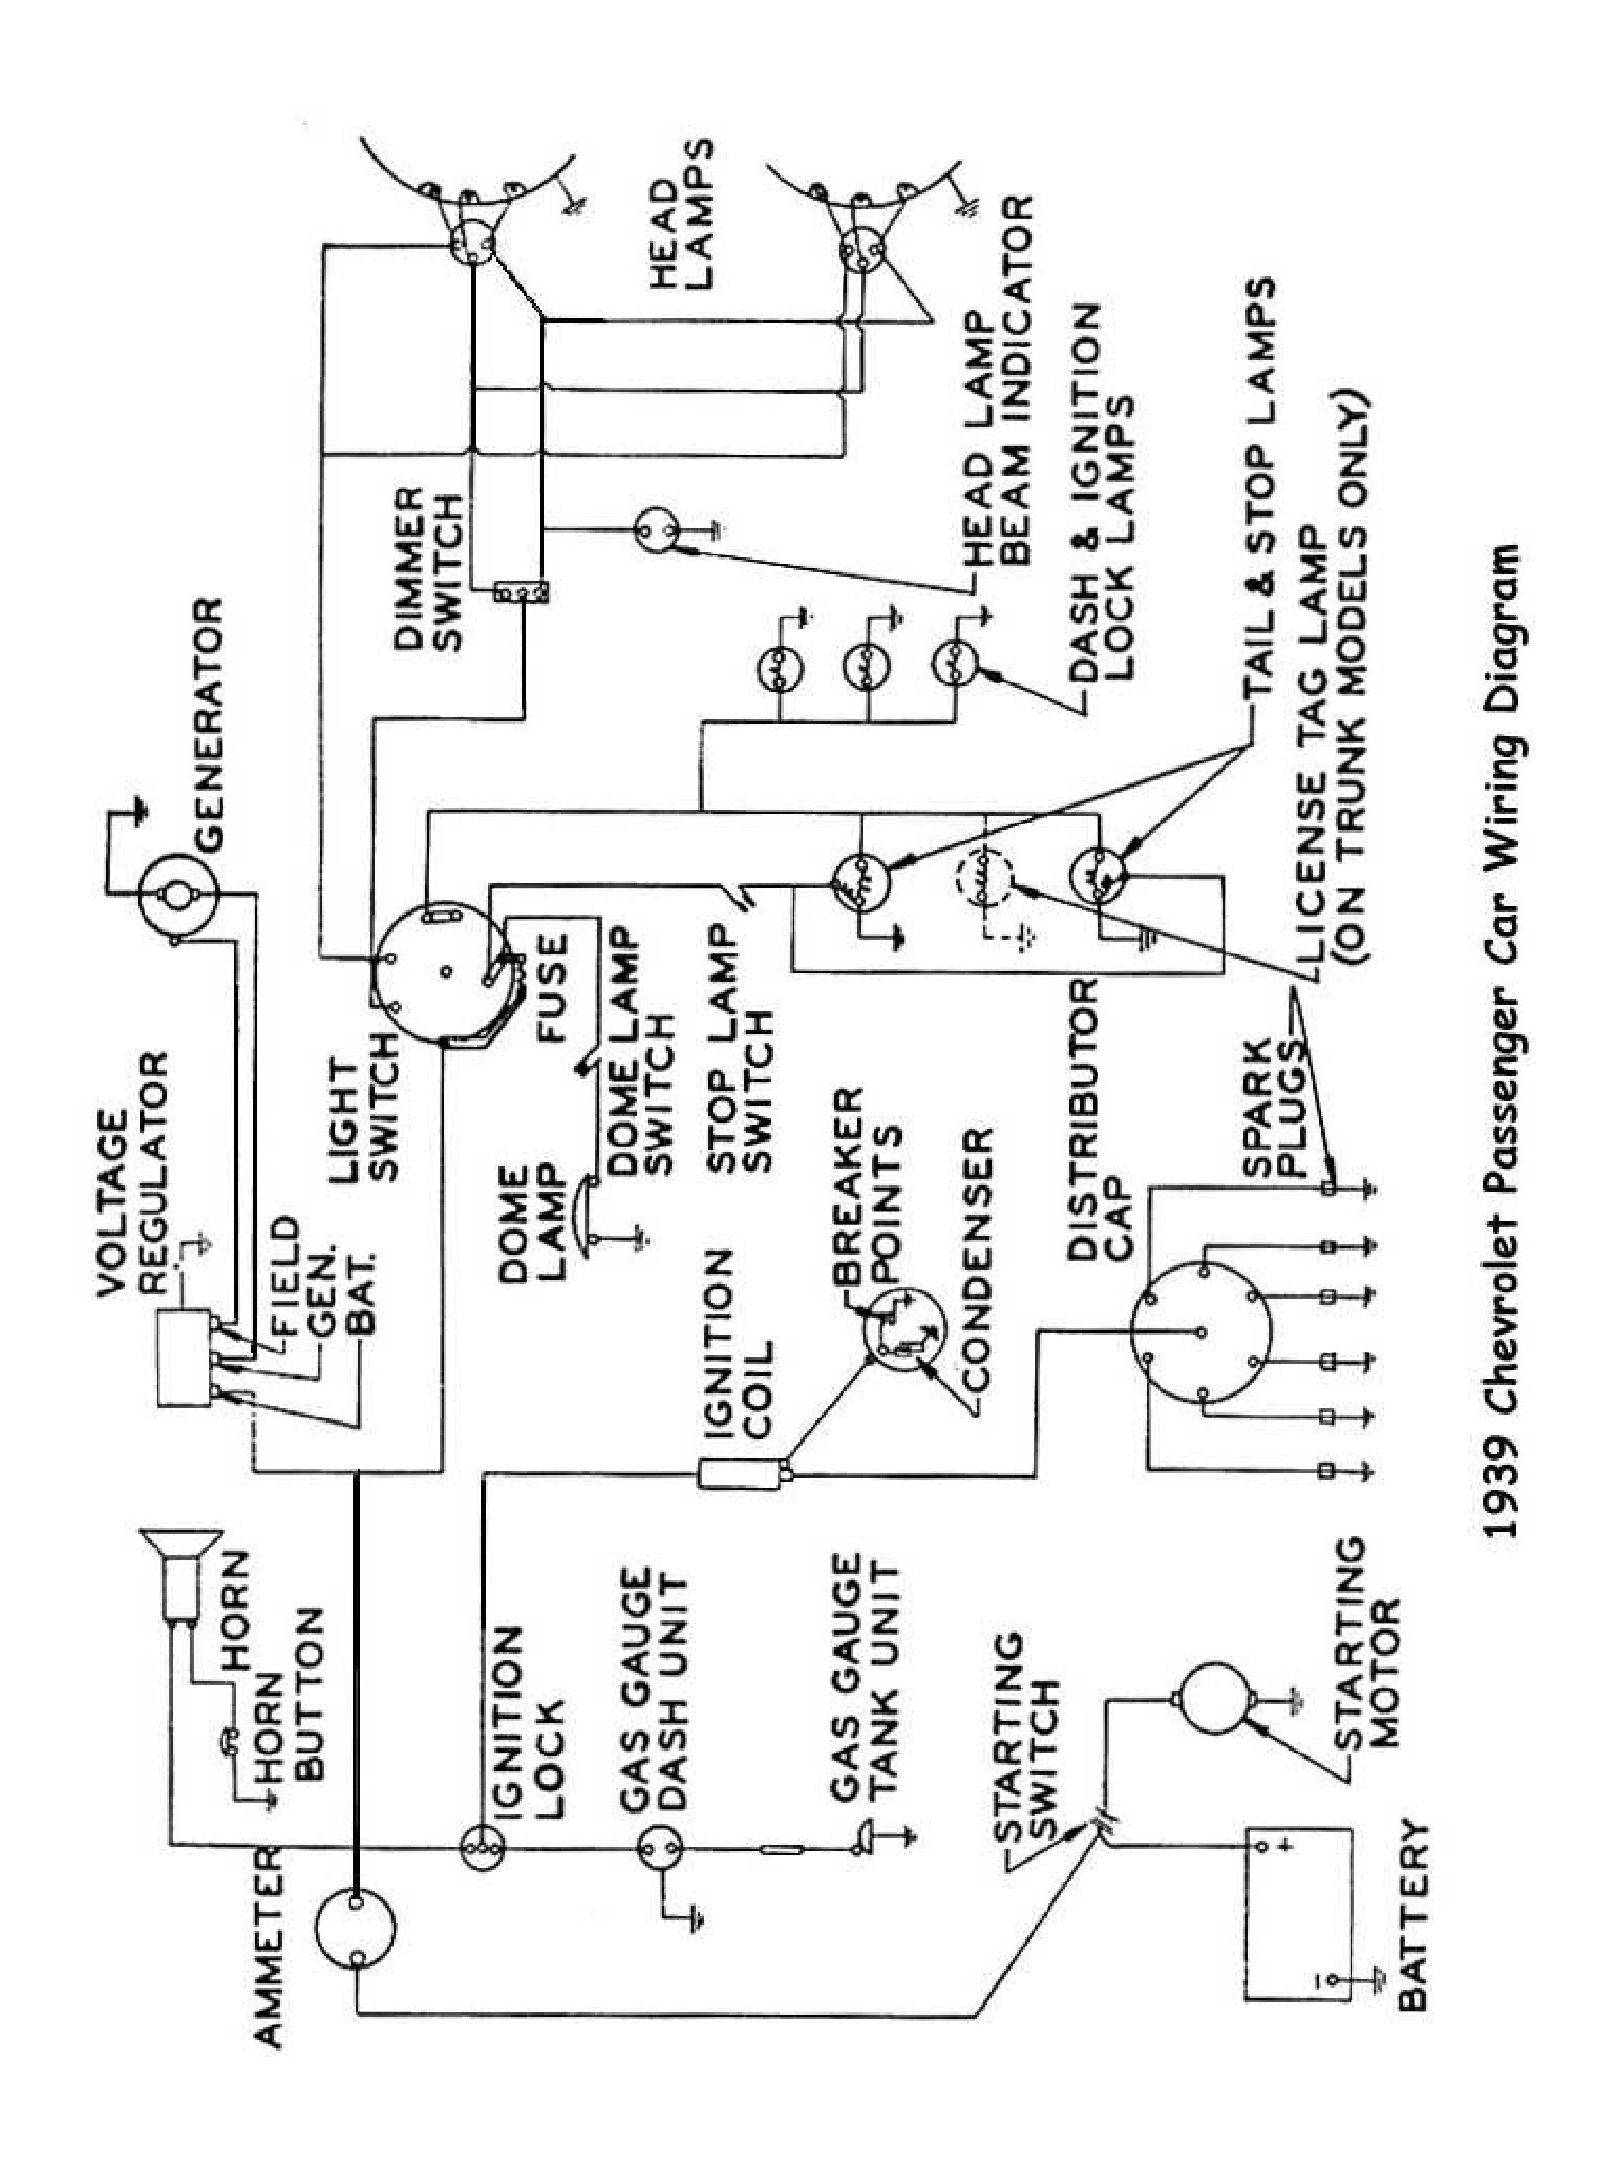 Car Ignition Circuit Diagram Awesome Ignition Wiring Diagram Diagram Of Car Ignition Circuit Diagram